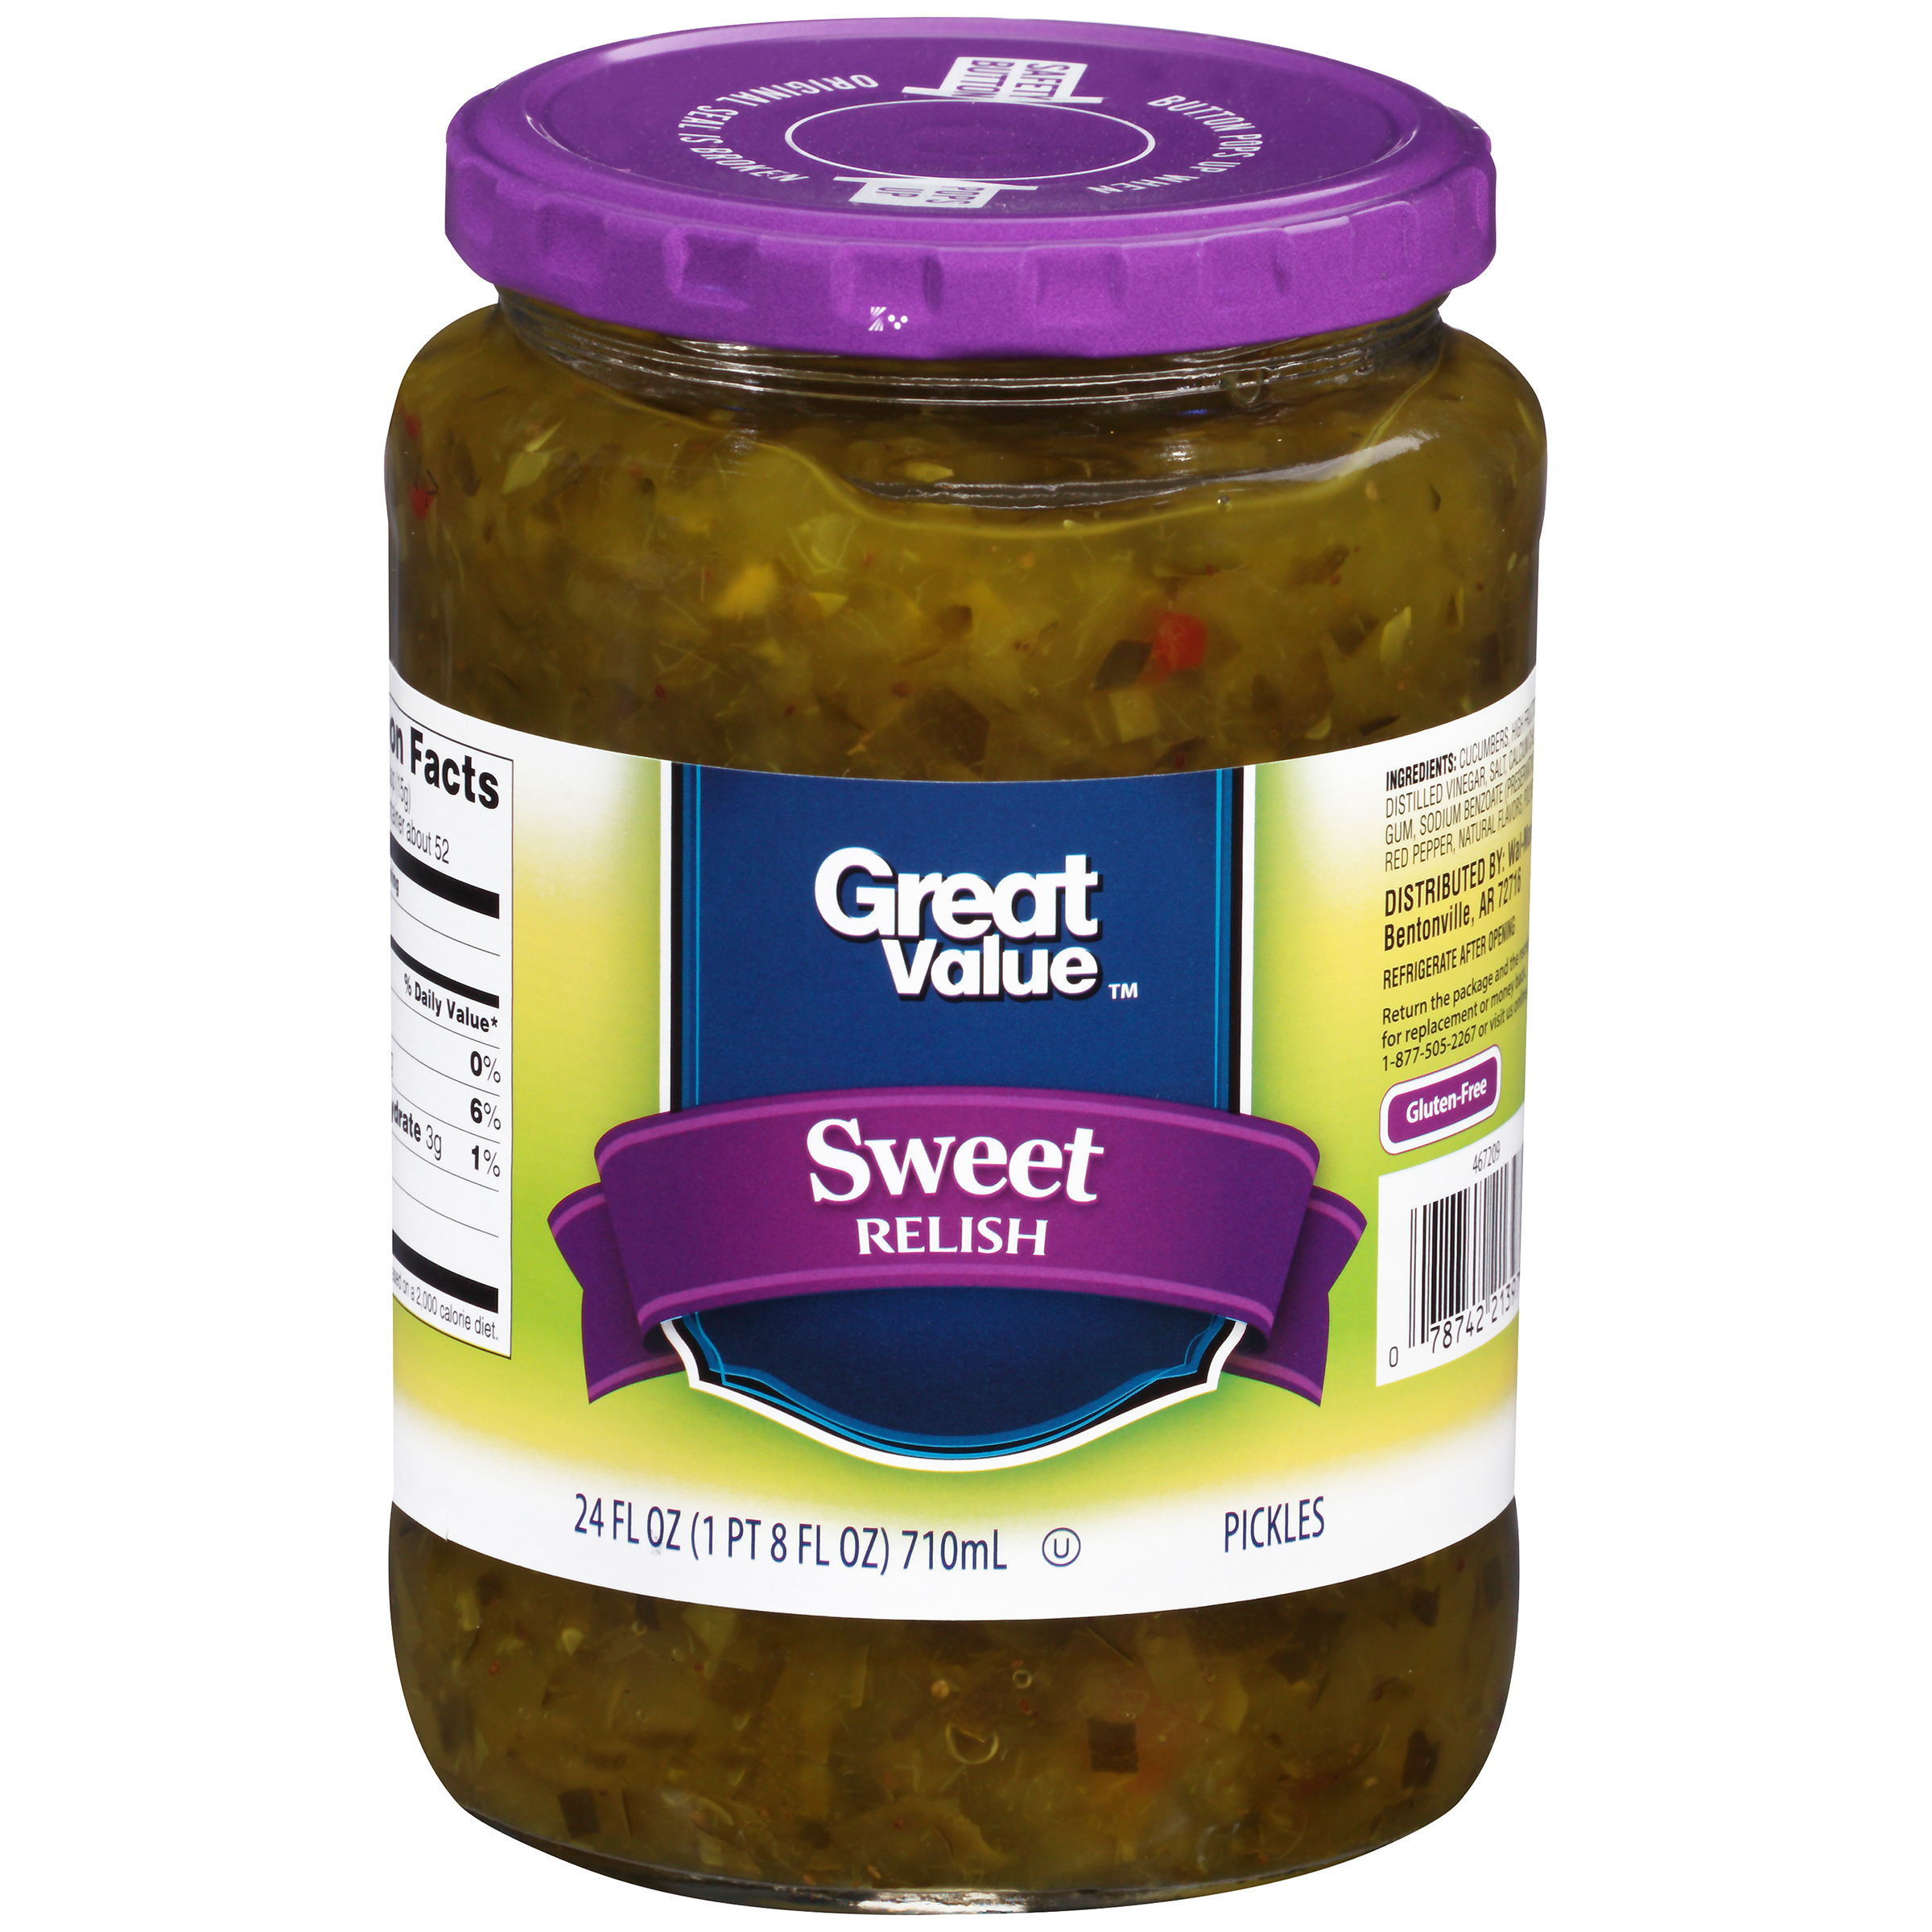 Great Value��� Sweet Relish 24 fl. oz. Jar